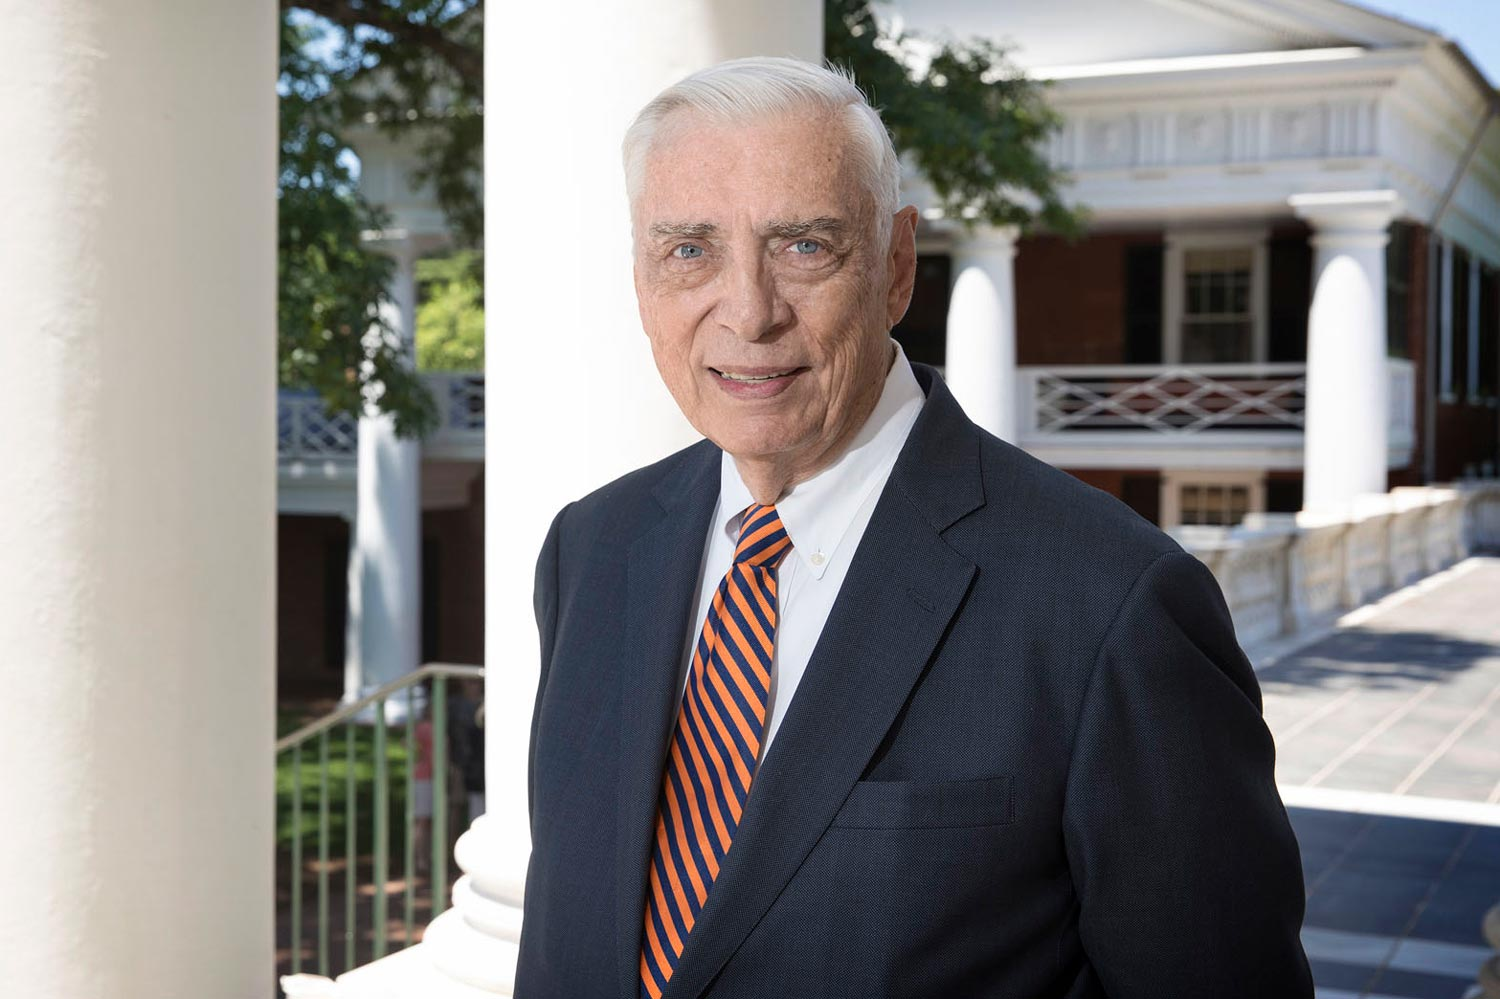 """John Lowe earned a degree in law at UVA in 1967 and remained dedicated to his """"beloved University"""" and attaining justice for """"the little guys"""" the rest of his life."""